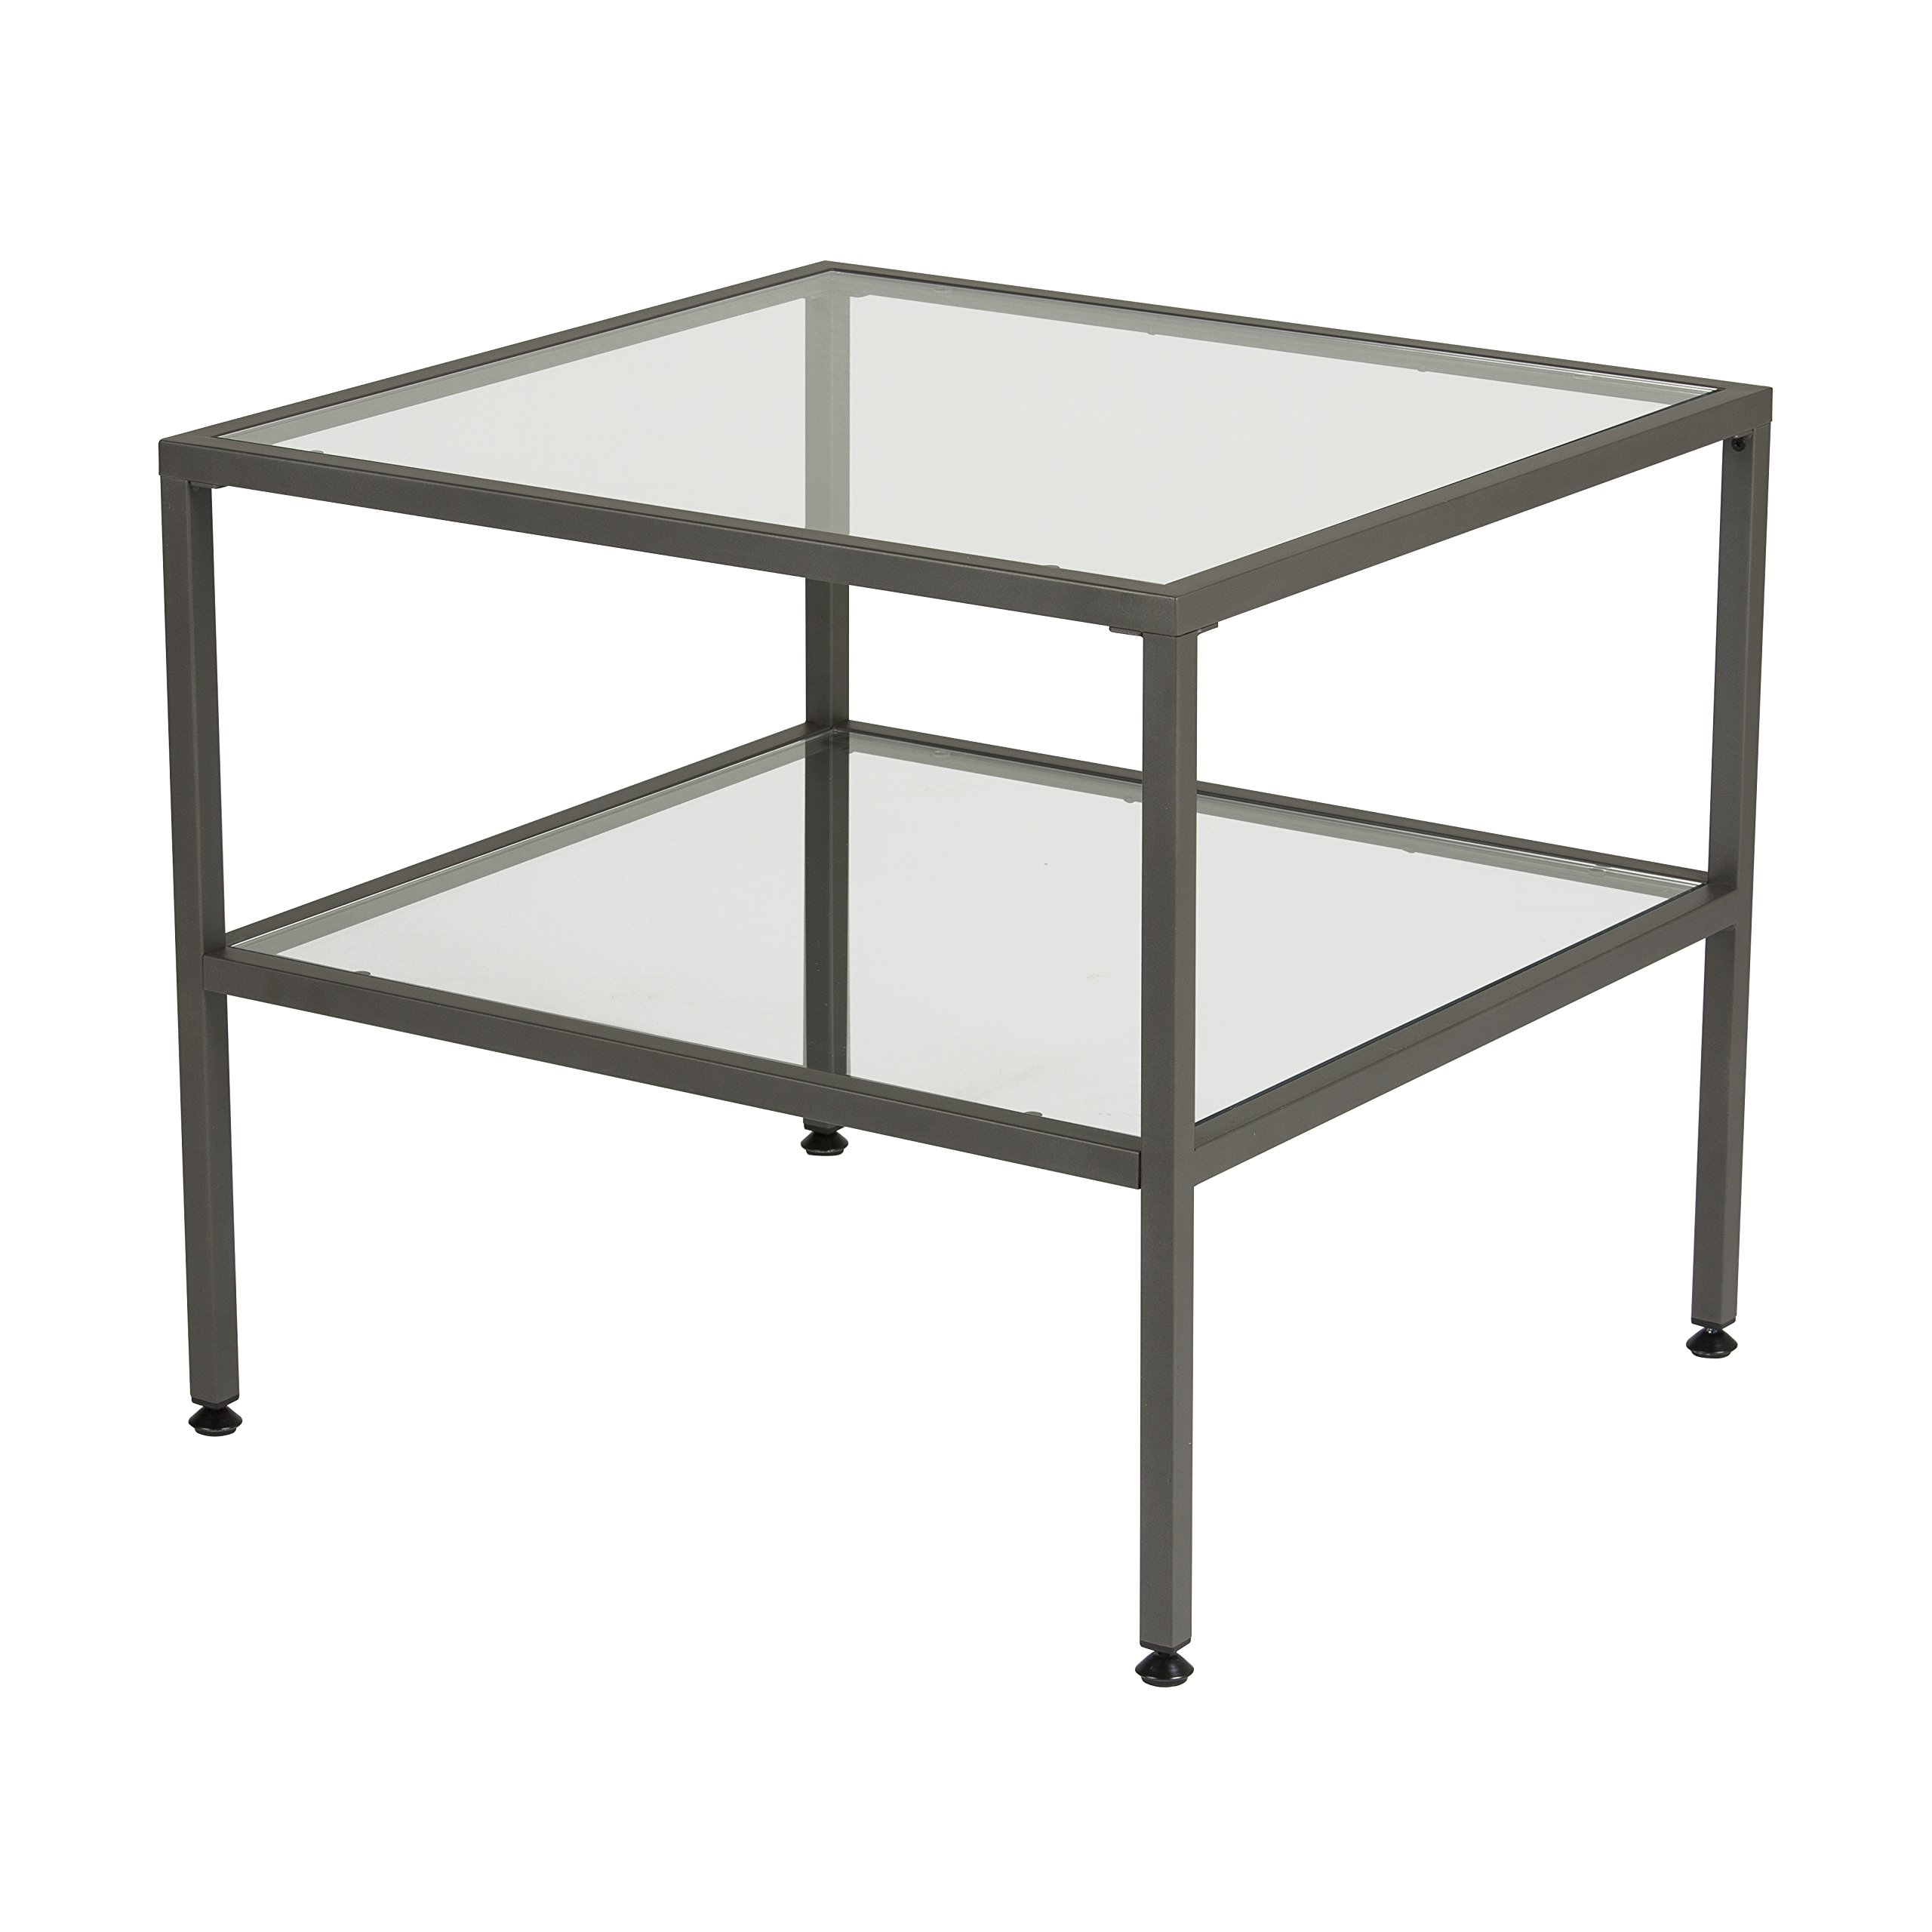 Studio Designs Home 71002.0 Camber One Shelf End Table In Pewter With Clear Glass